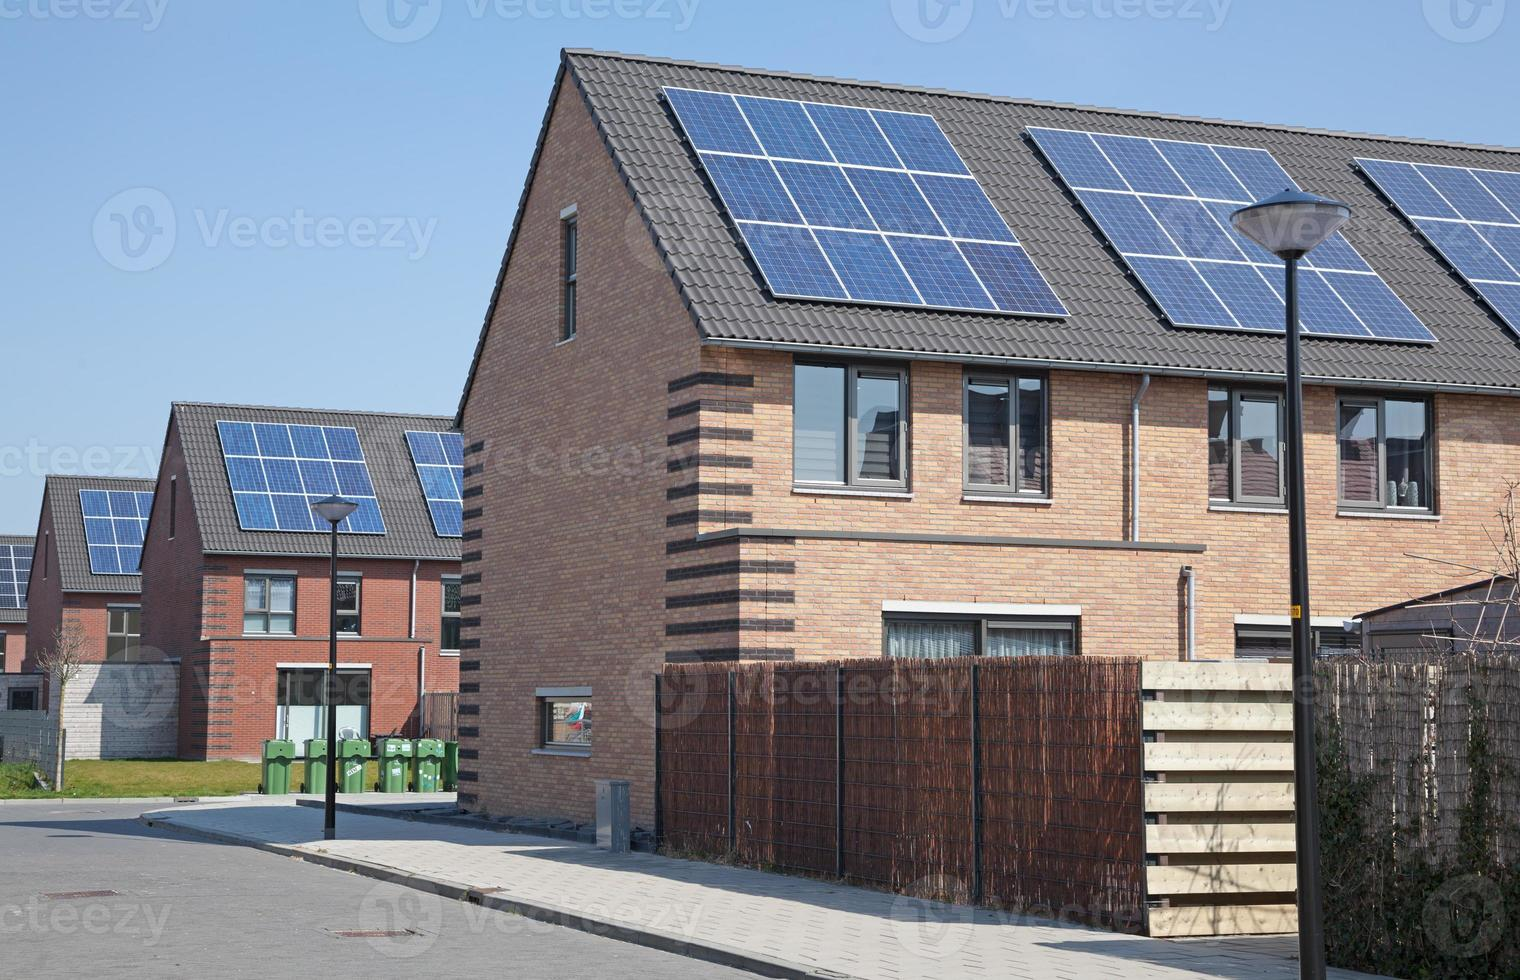 New family homes with solar panels on the roof photo